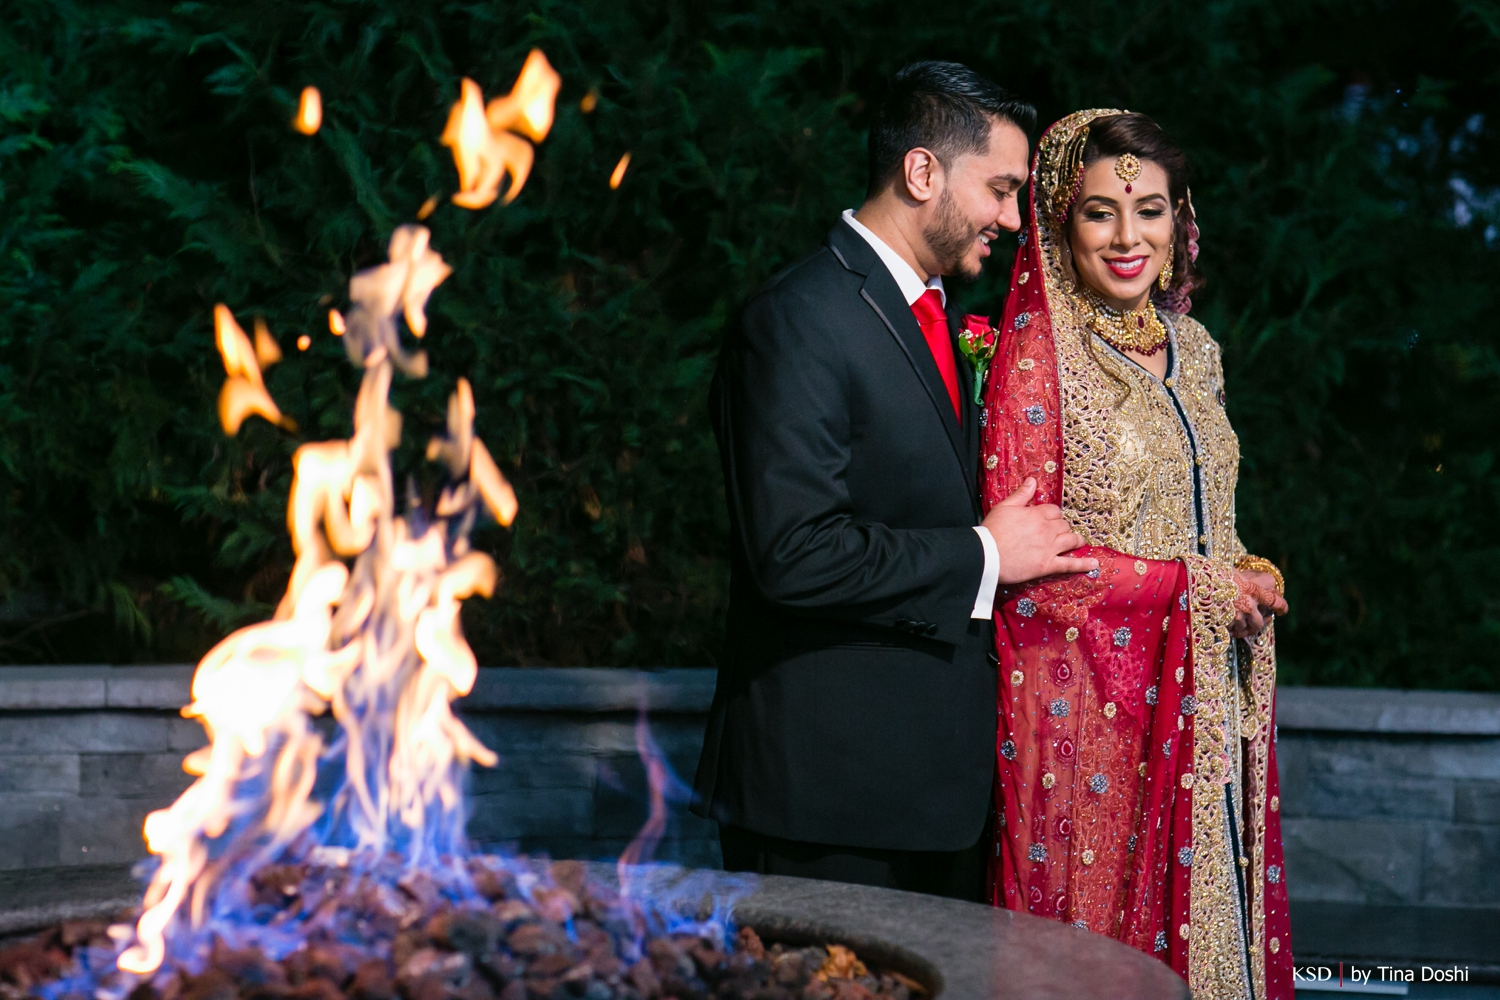 nj_south_asian_wedding_0080